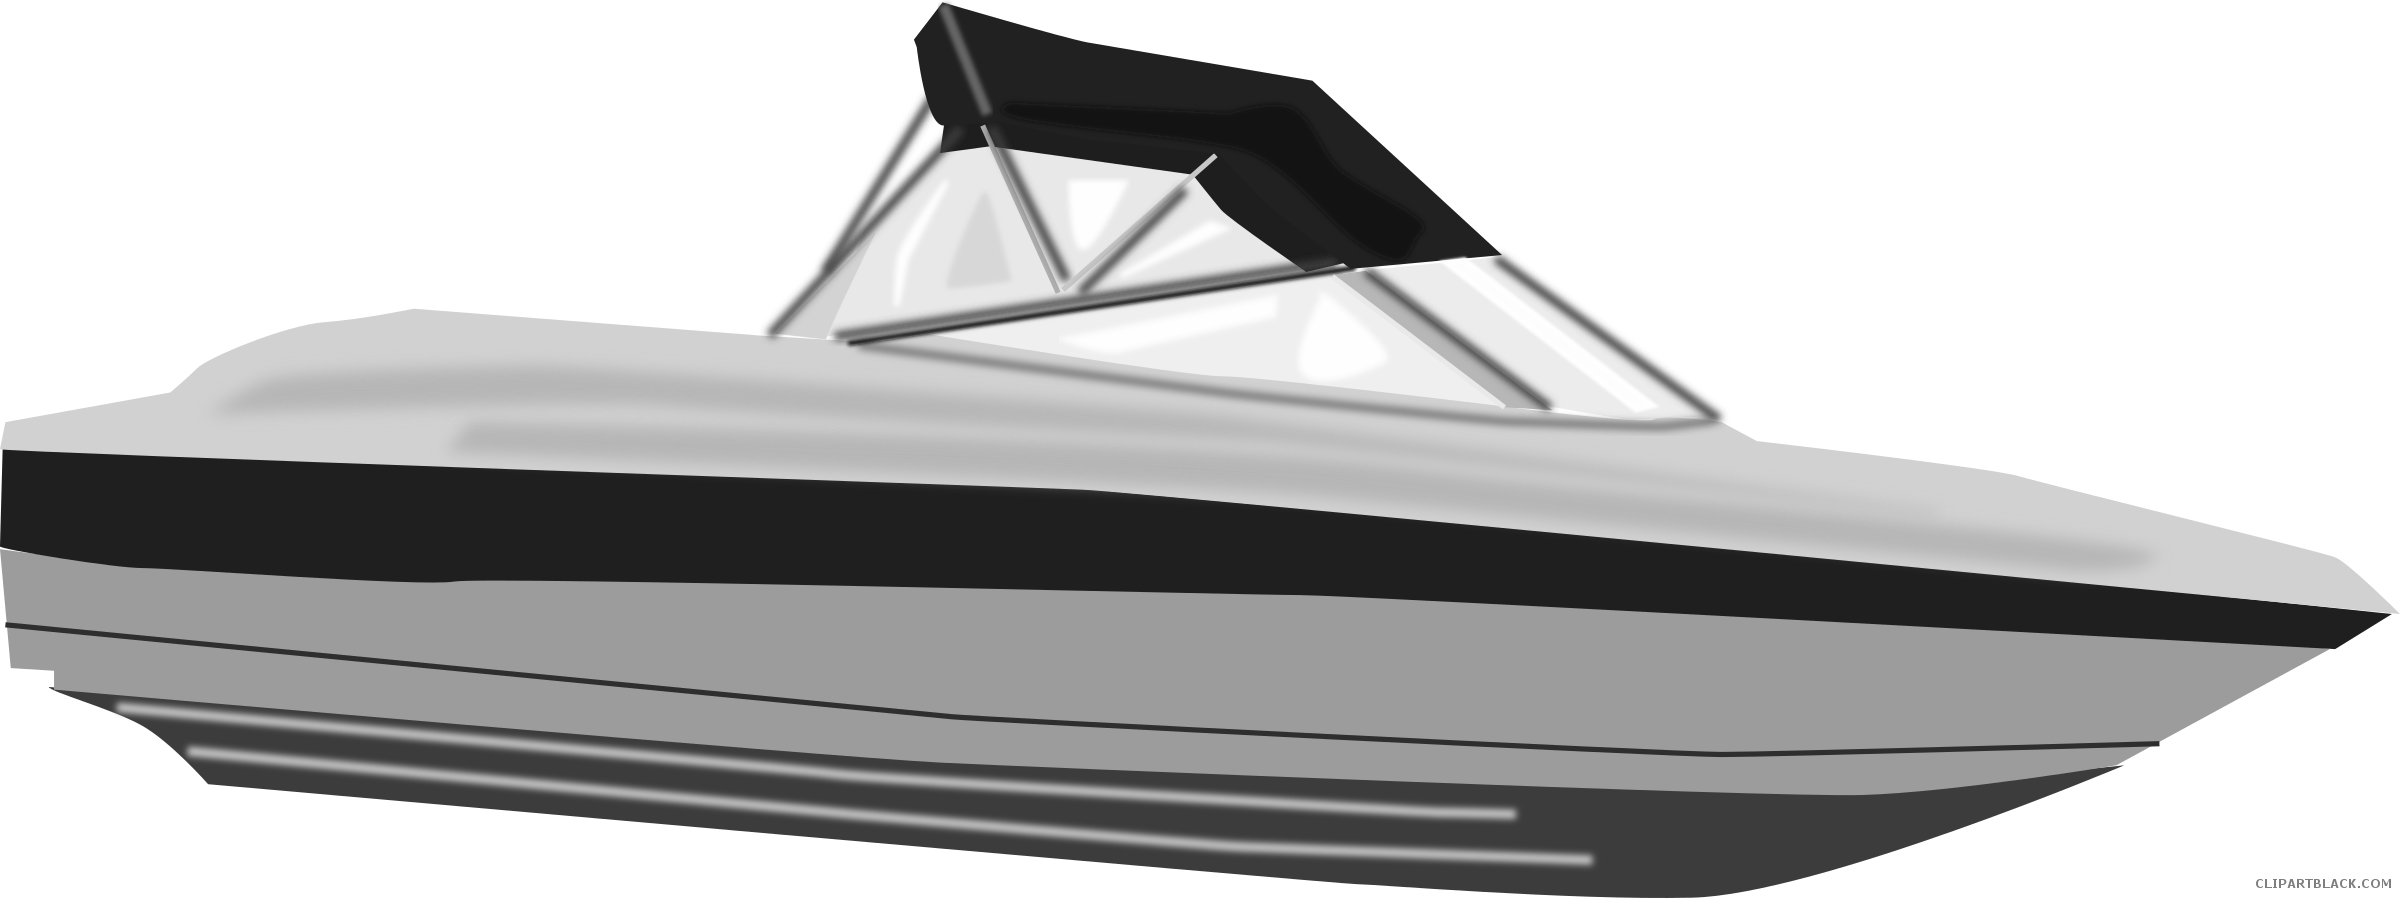 Speed clipart free clip art black and white download Speed Boat Clipart - ClipartBlack.com clip art black and white download